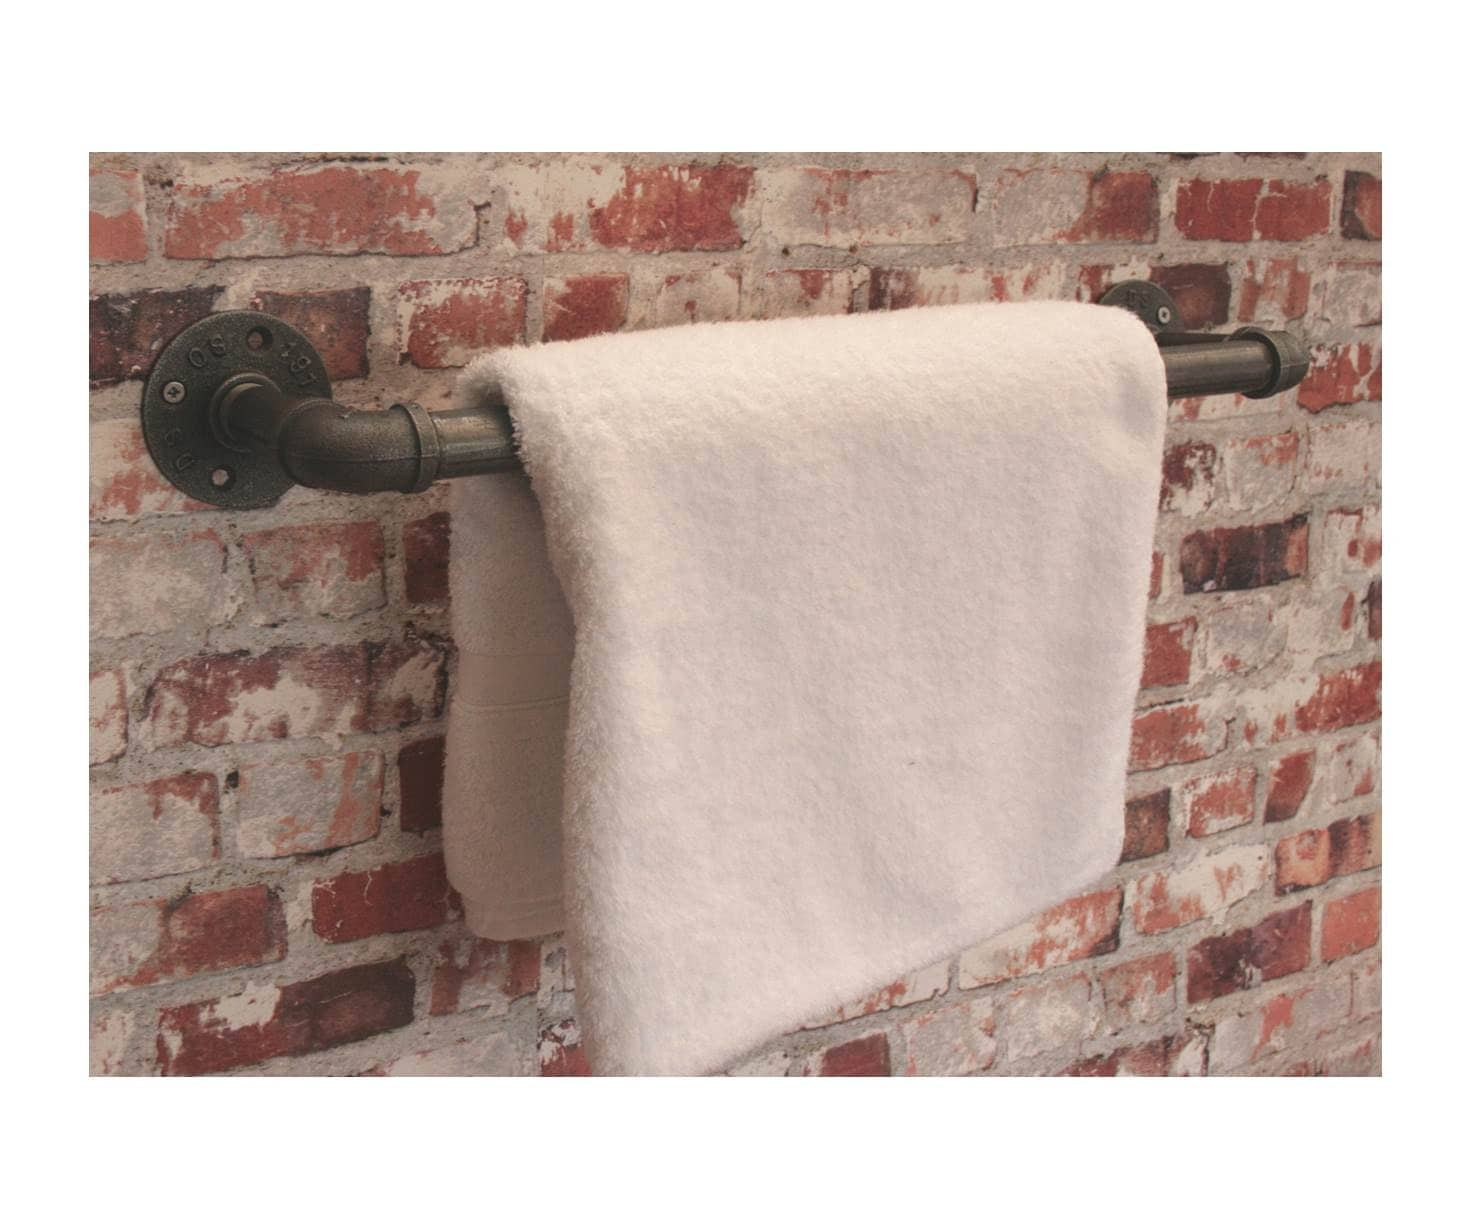 INDUSTRIAL TOWEL RAIL 34 Pipe  Utensil Steampunk Kitchen Bathroom Storage Old Victorian Style Water Pipes